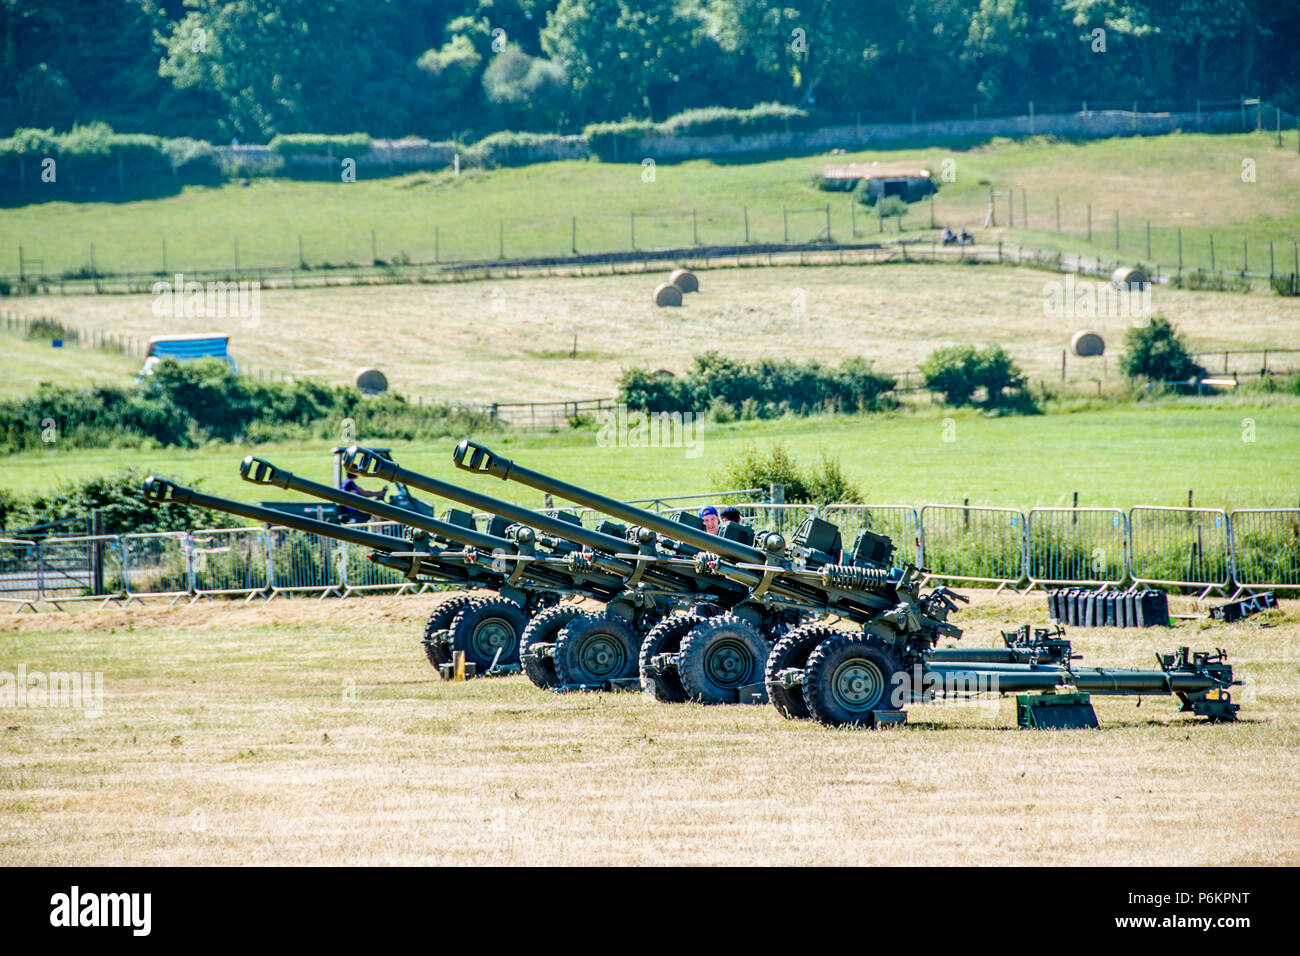 L118 Light Gun of the British Army. Setup in a field ready to fire. - Stock Image